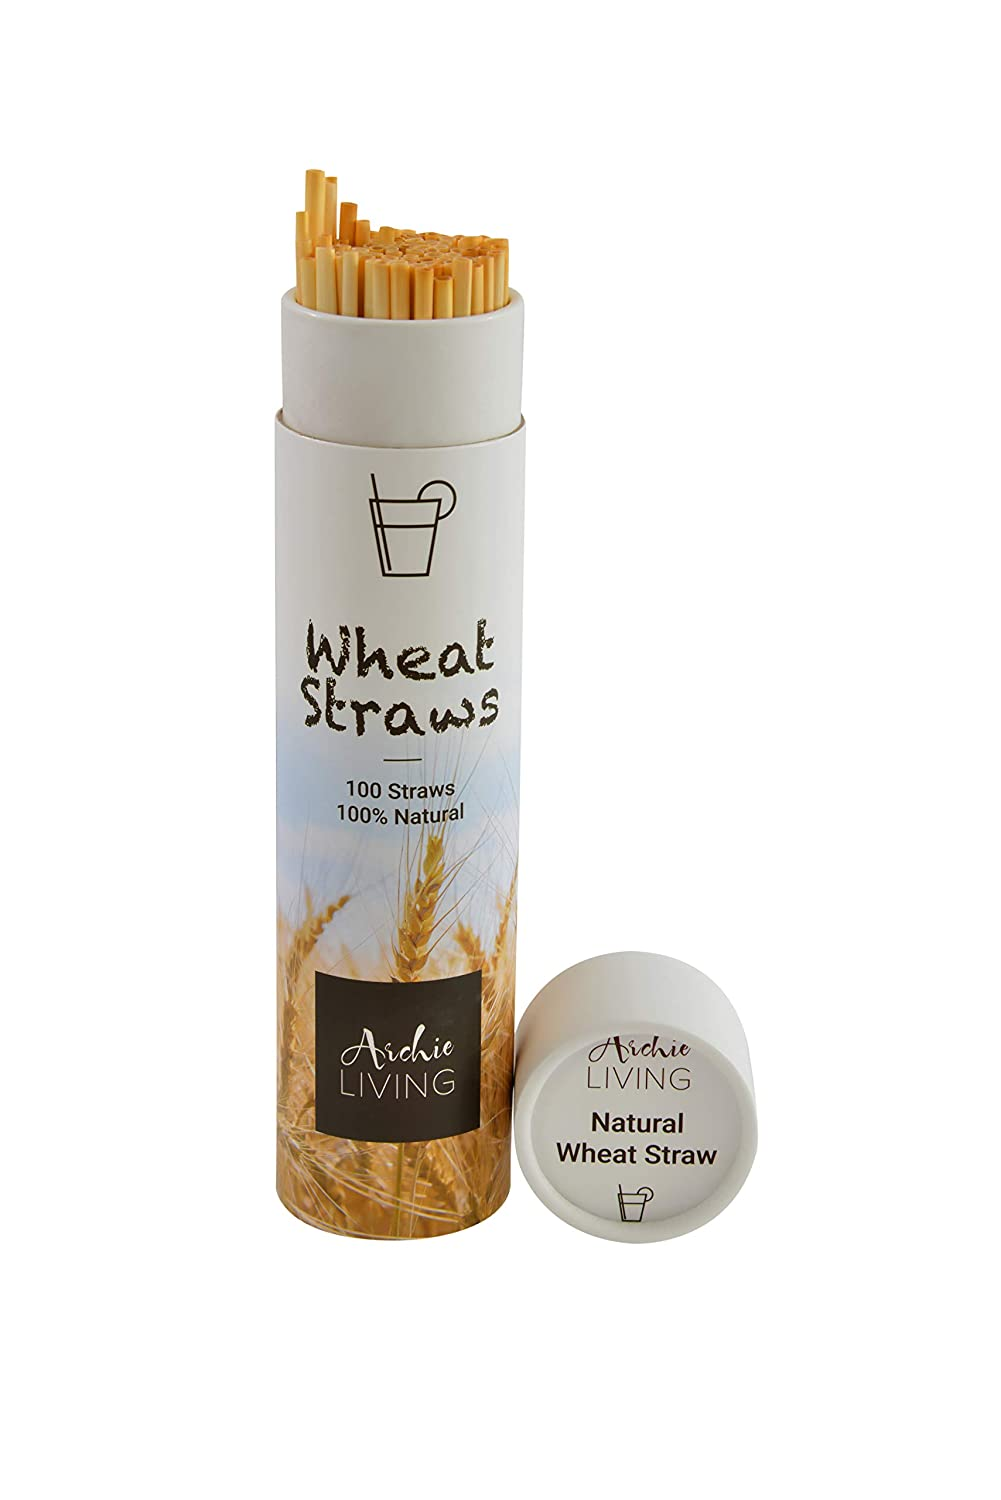 Tube of 100 Organic Natural Wheat Drinking Straws Eco Friendly 22cm Long Metal and Silicone Reusable Biodegradable Alternative to Plastic by Archie Living Reducing Single Use Plastic.